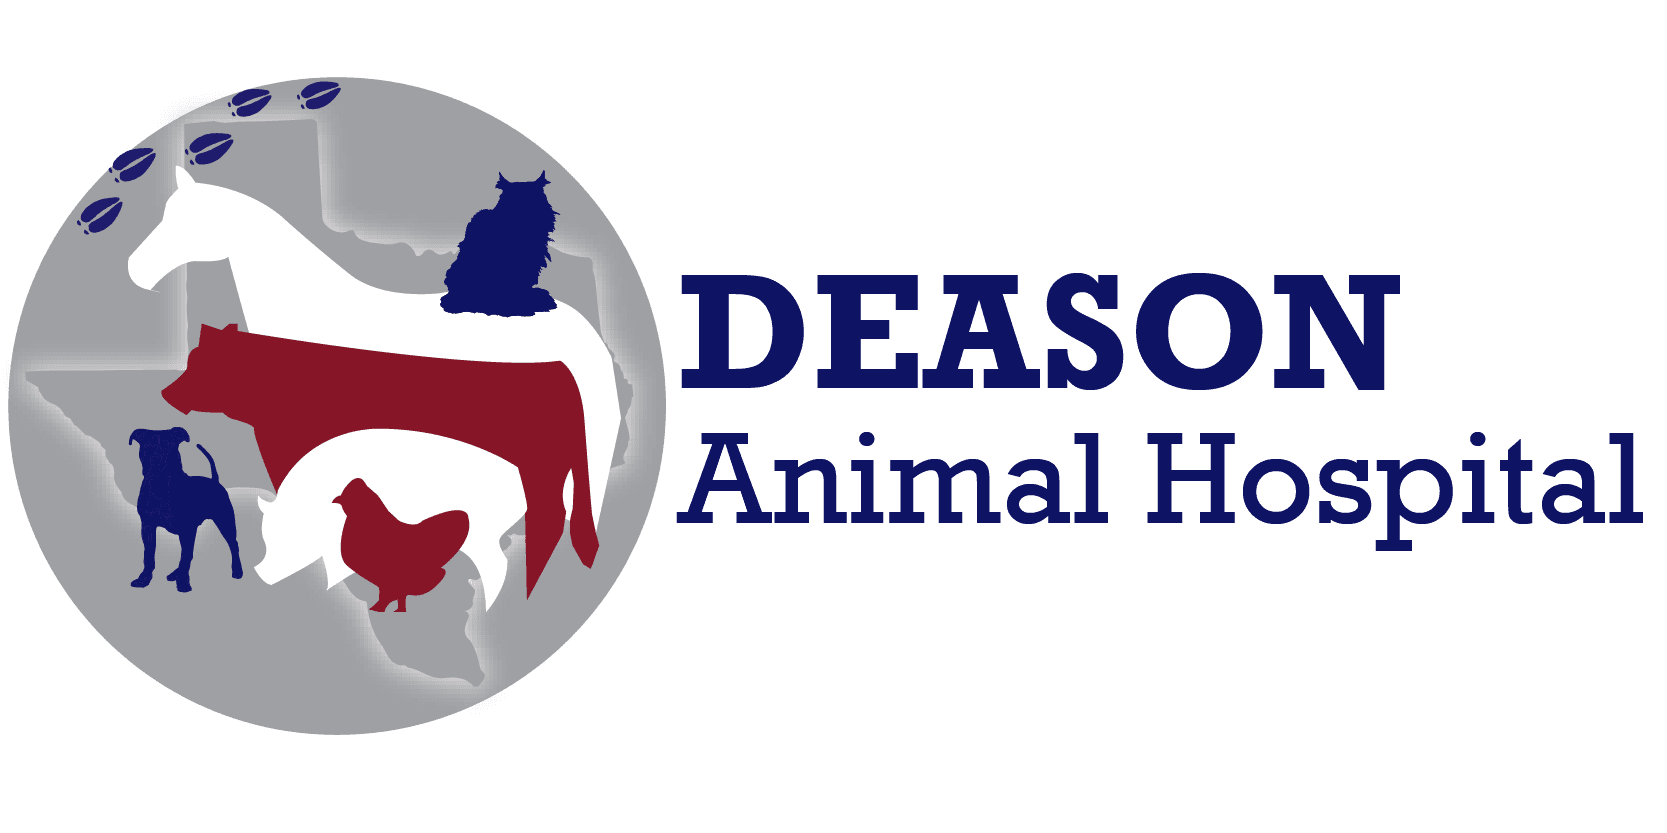 Canine veterinarians serving Floresville Texas, Stockdale, Pleasanton and Wilson County Texas